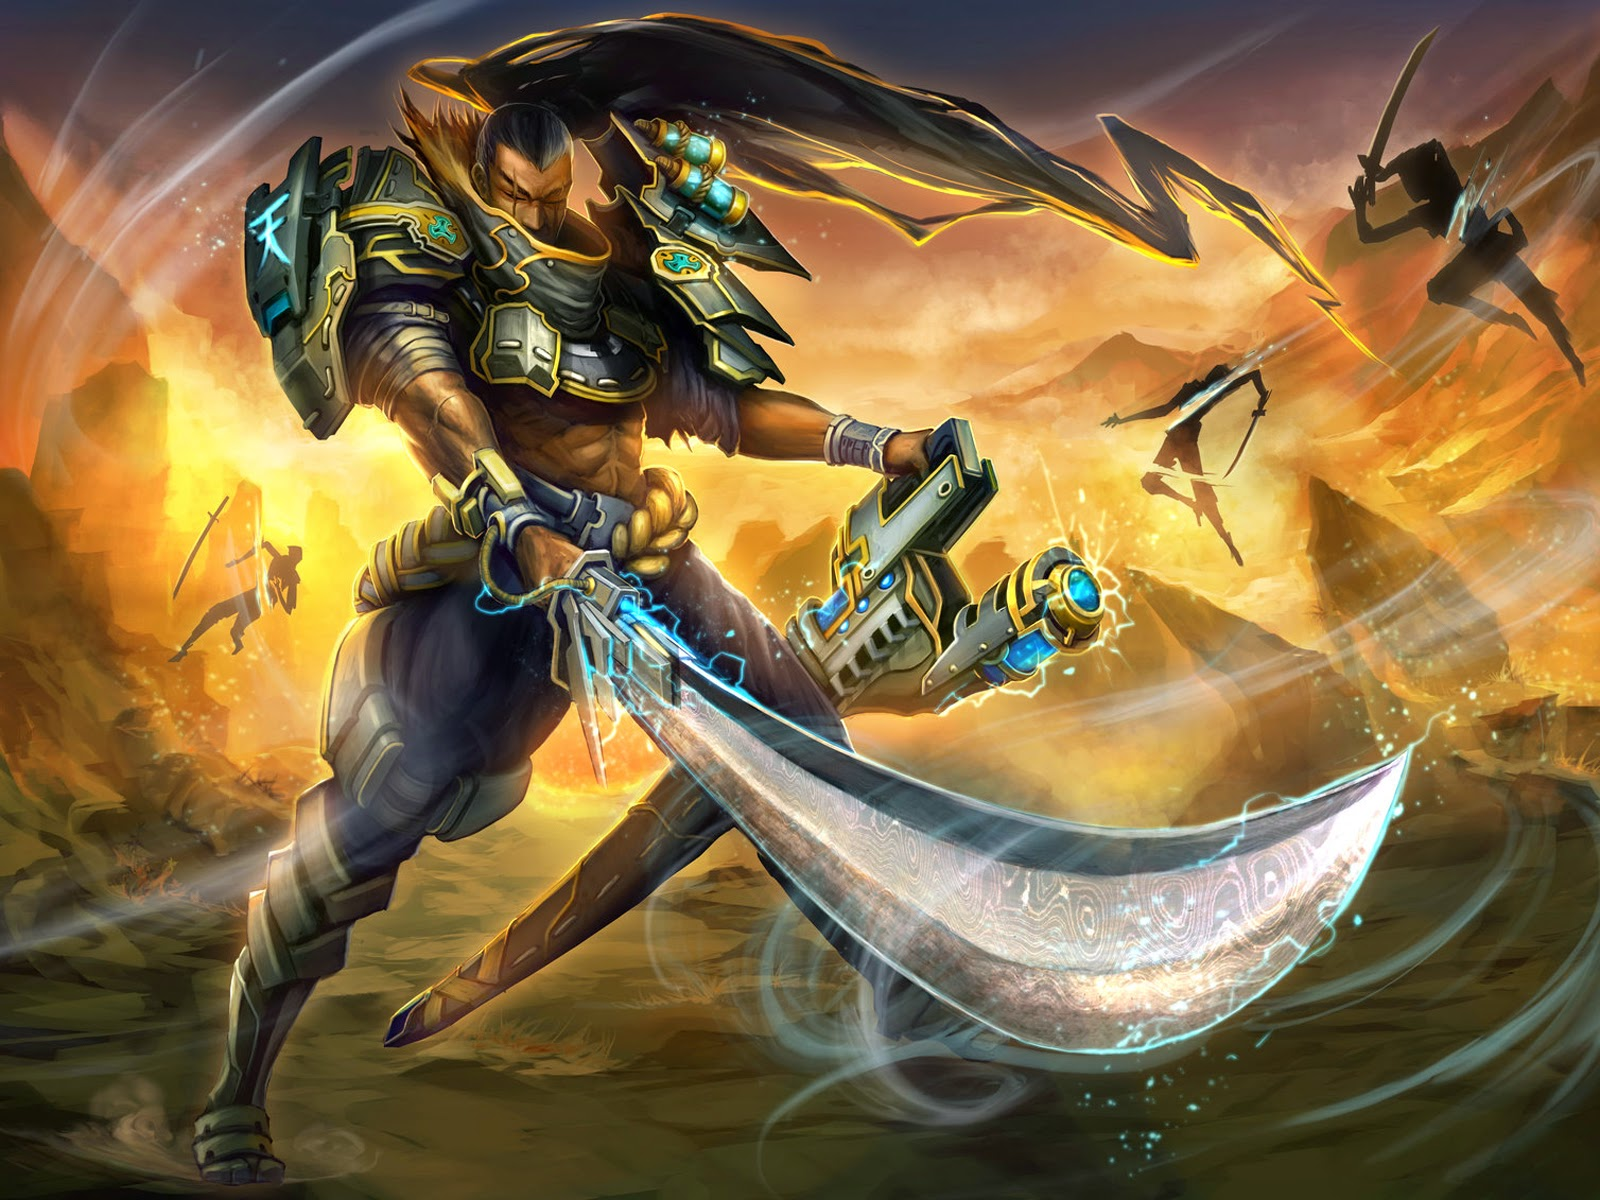 Epic Wallpapers Hd Yasuo League Of Legends Wallpaper Yasuo Desktop Wallpaper